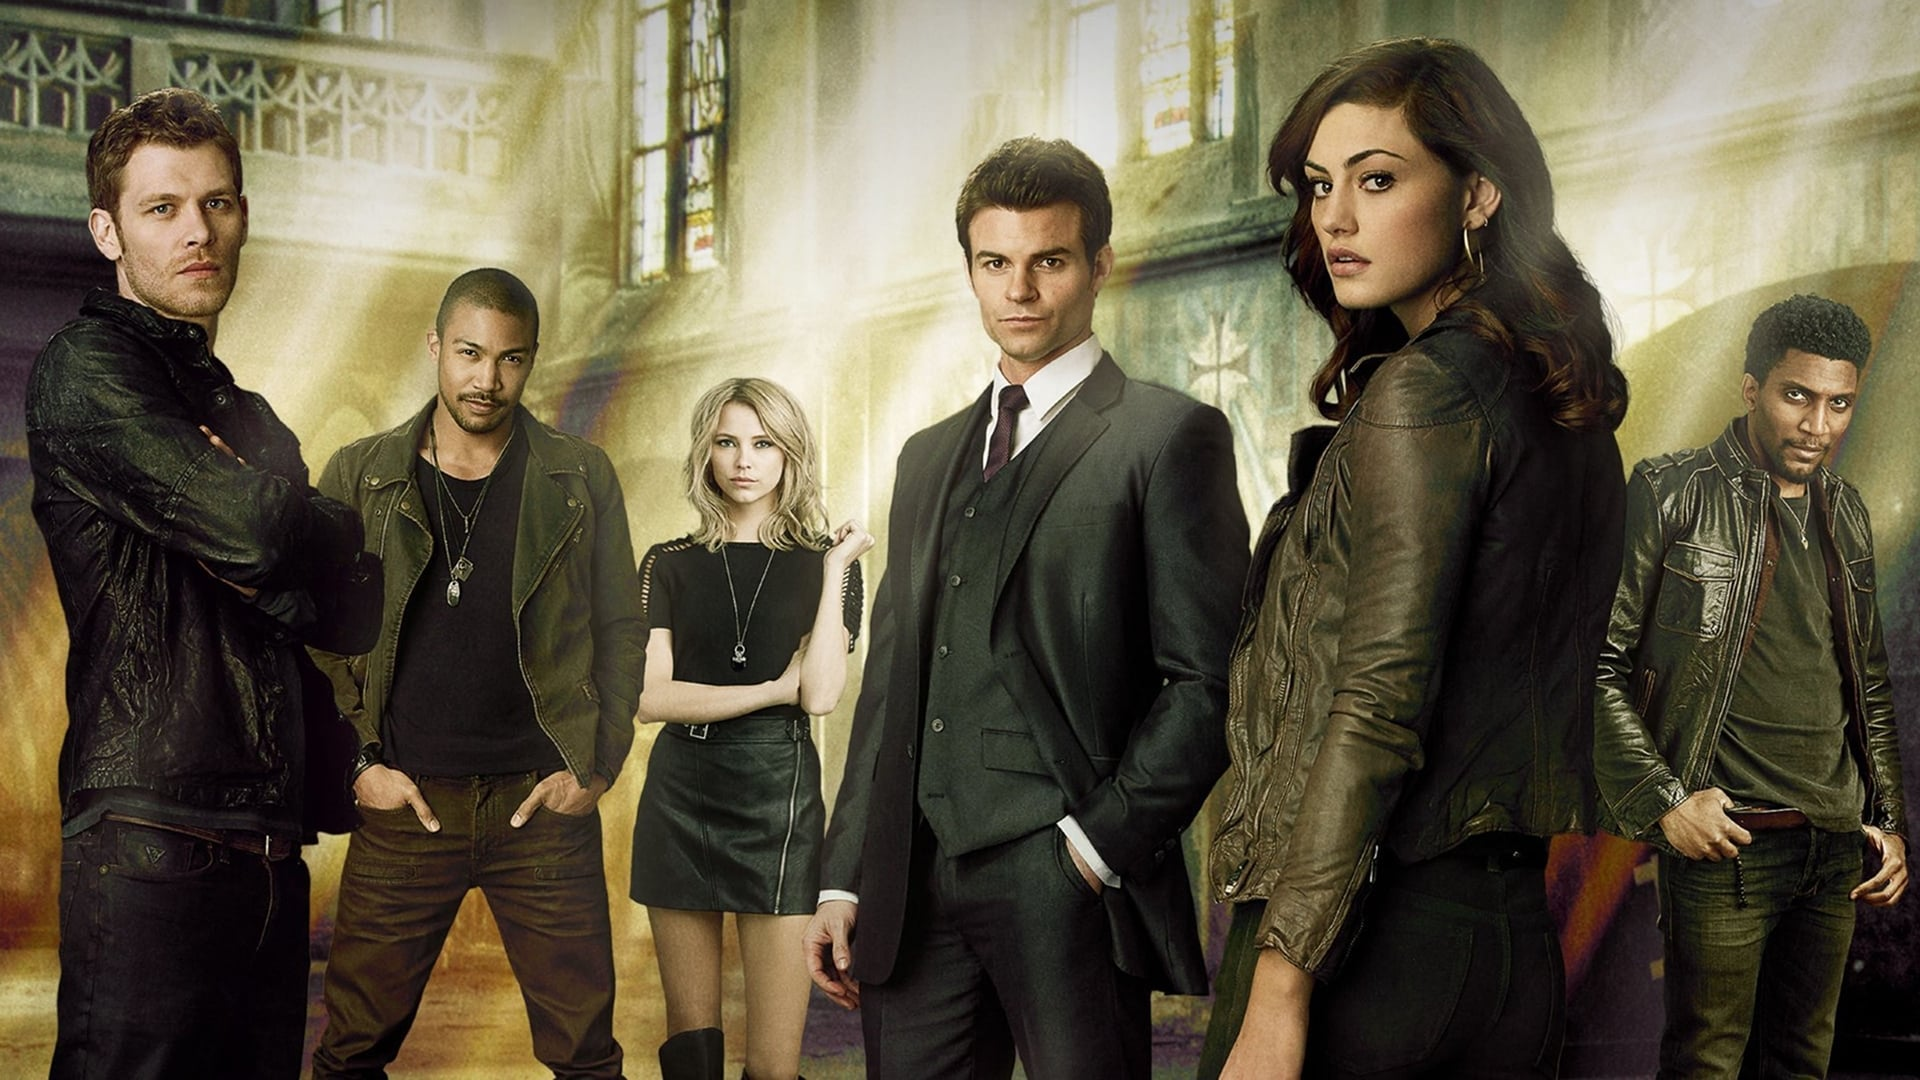 The Originals - Season 1